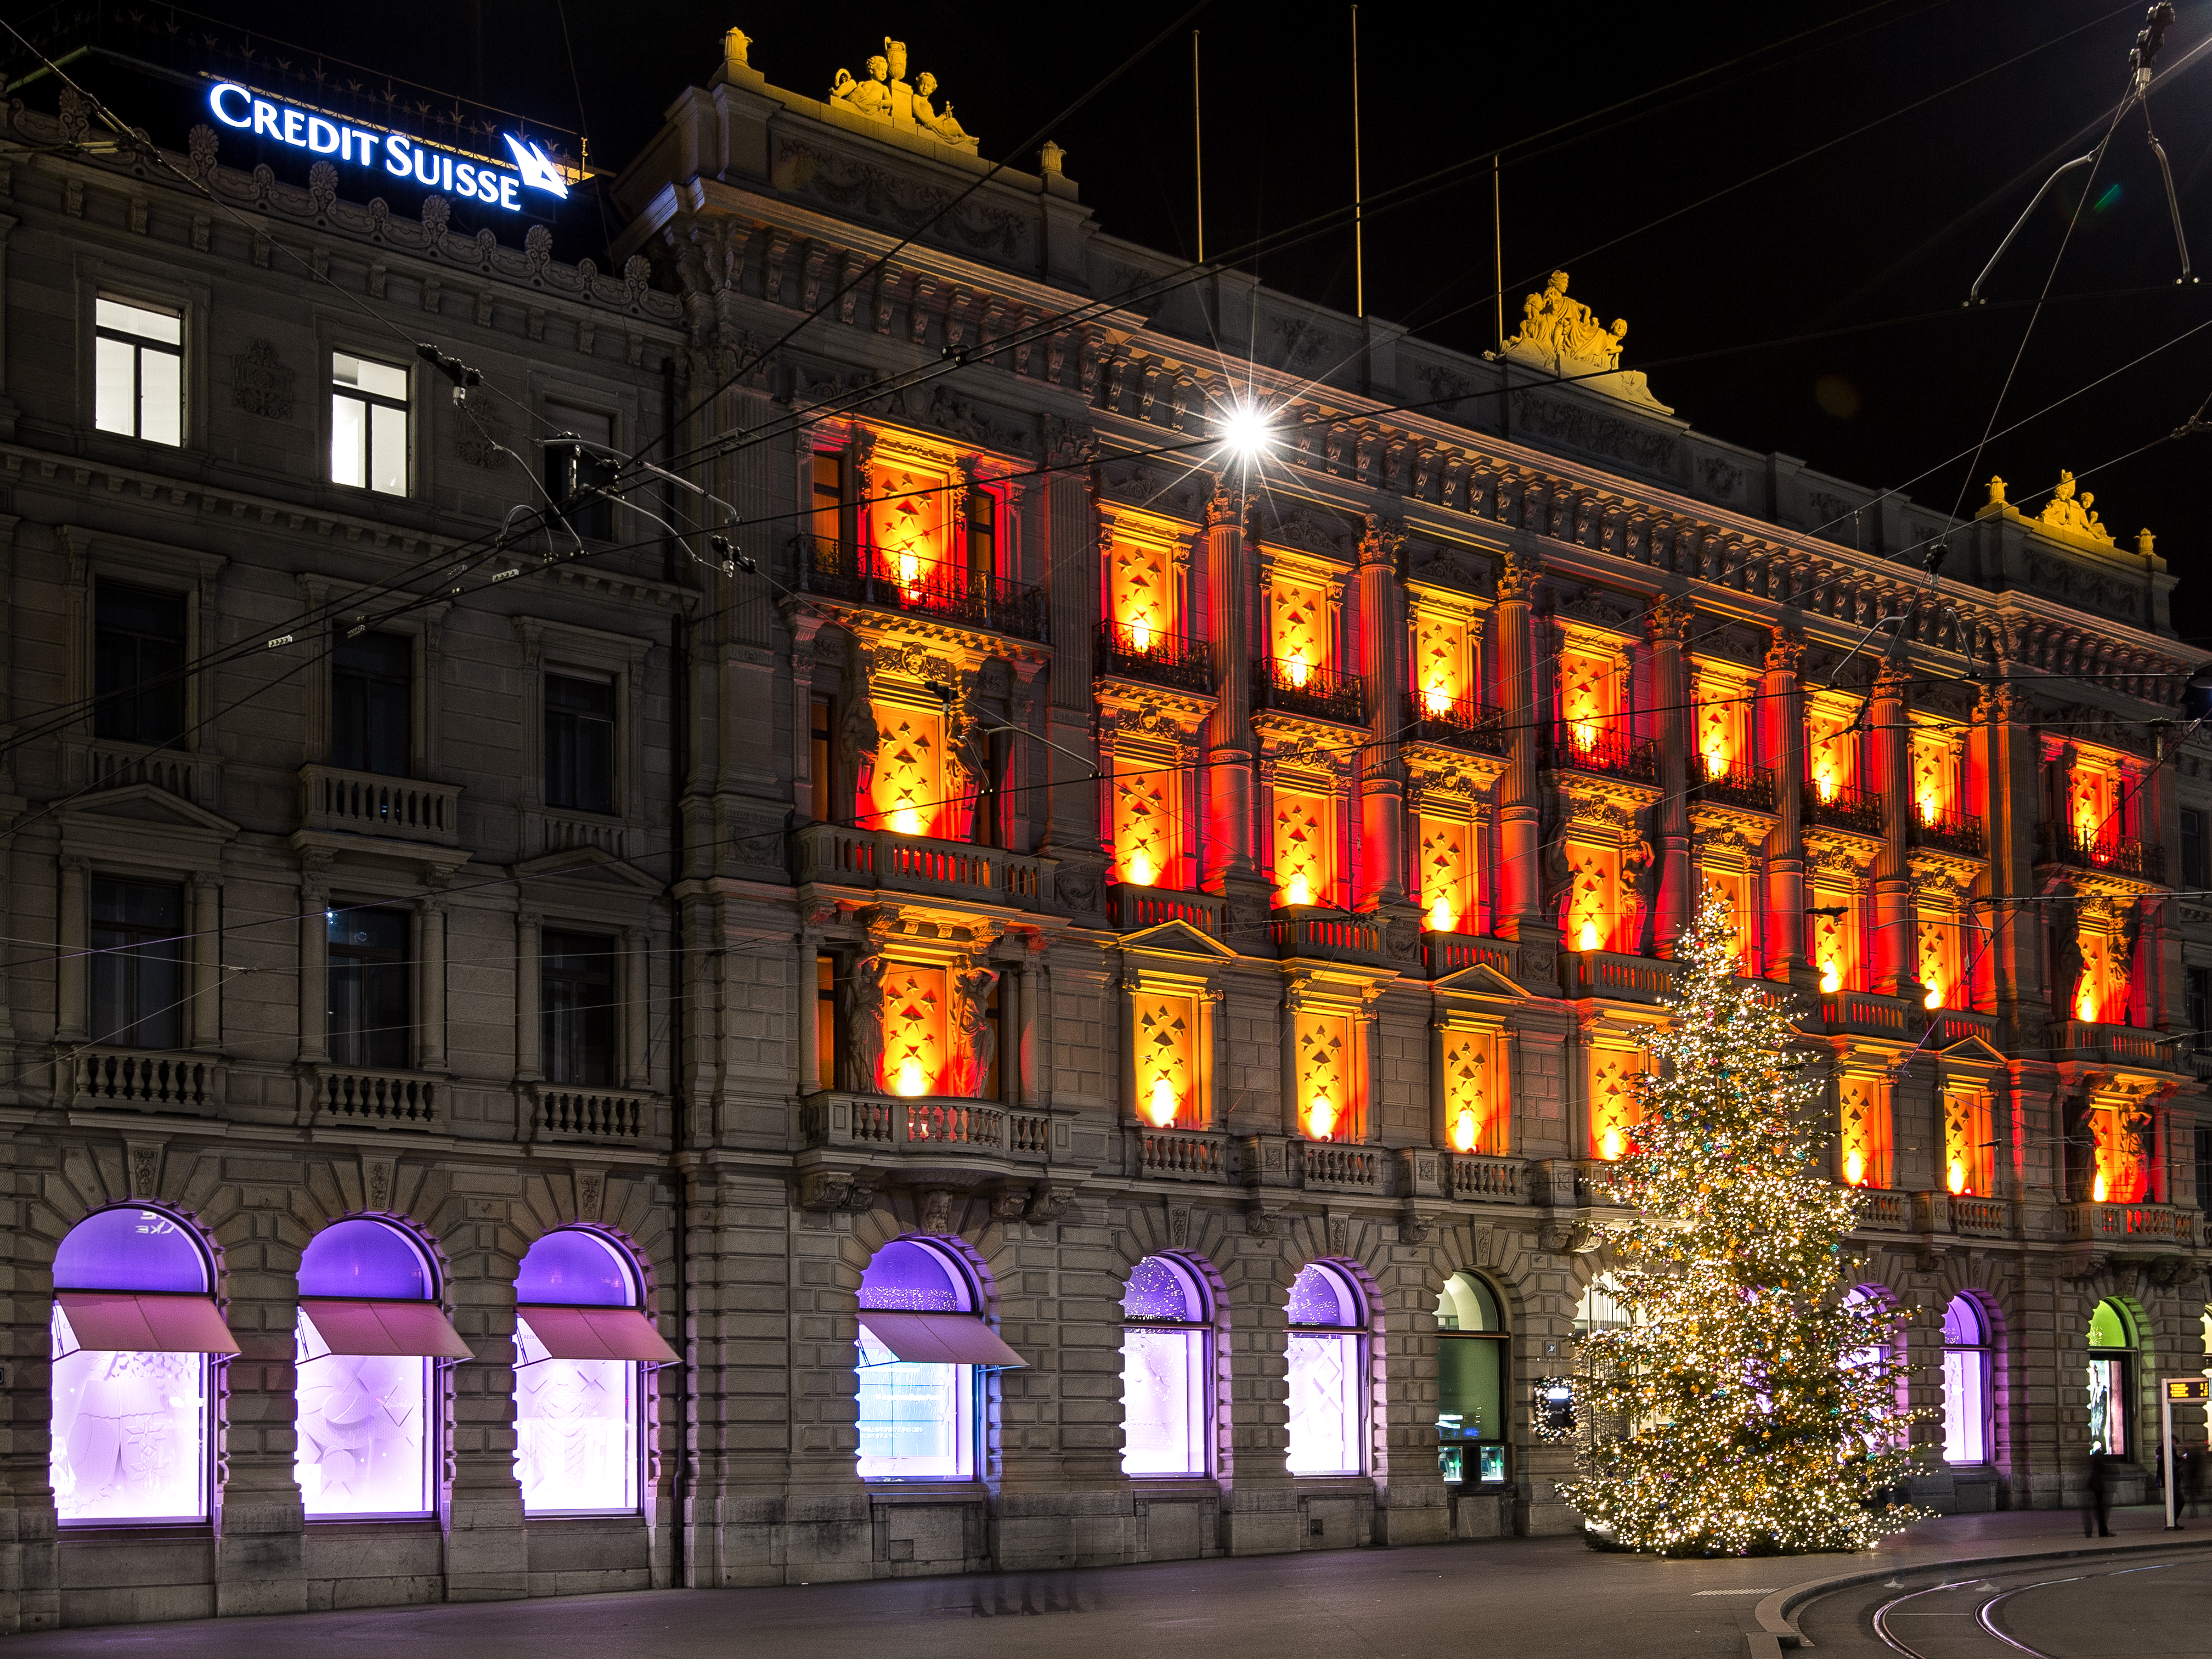 Credit Suisse Schaufenster Xmas 2015